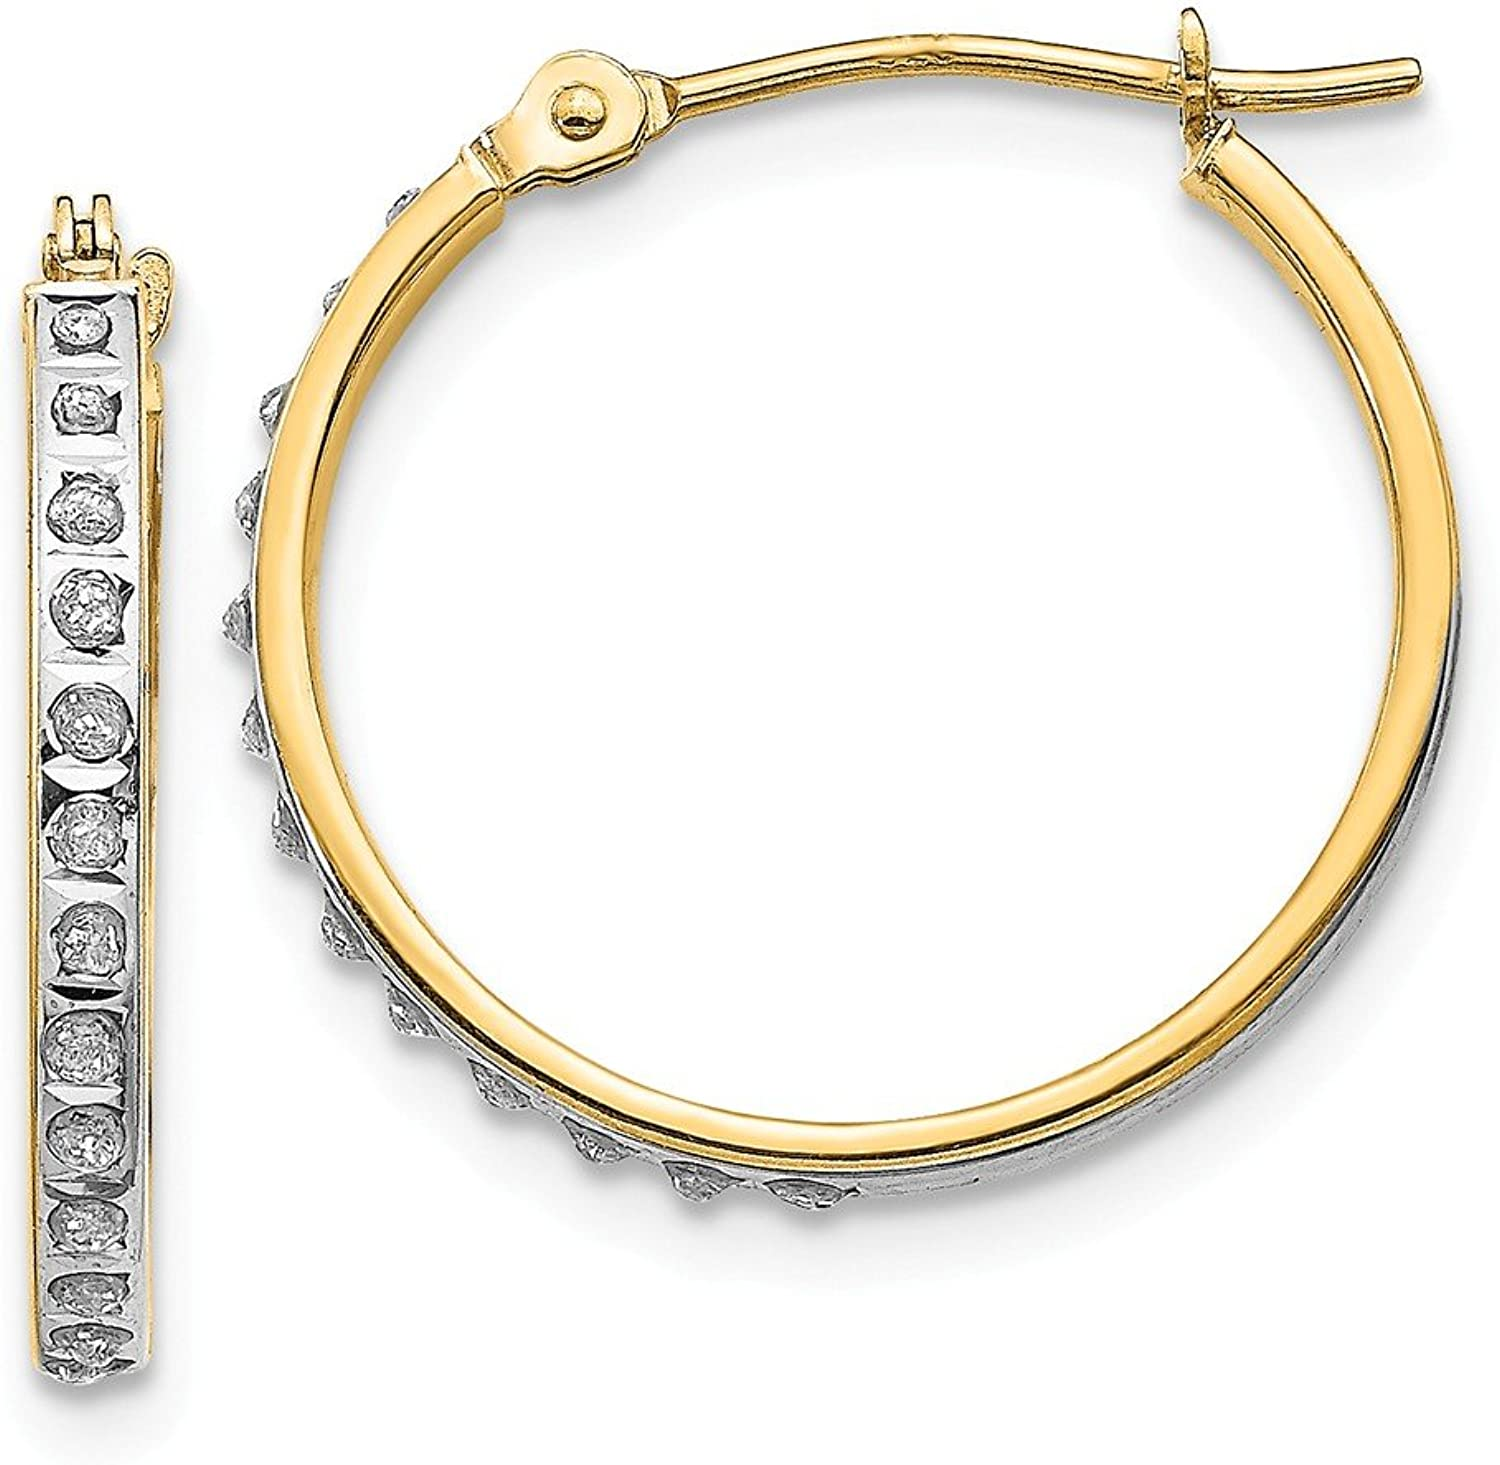 Beautiful Yellow gold 14K Yellowgold 14k Diamond Fascination Round Hinged Hoop Earrings